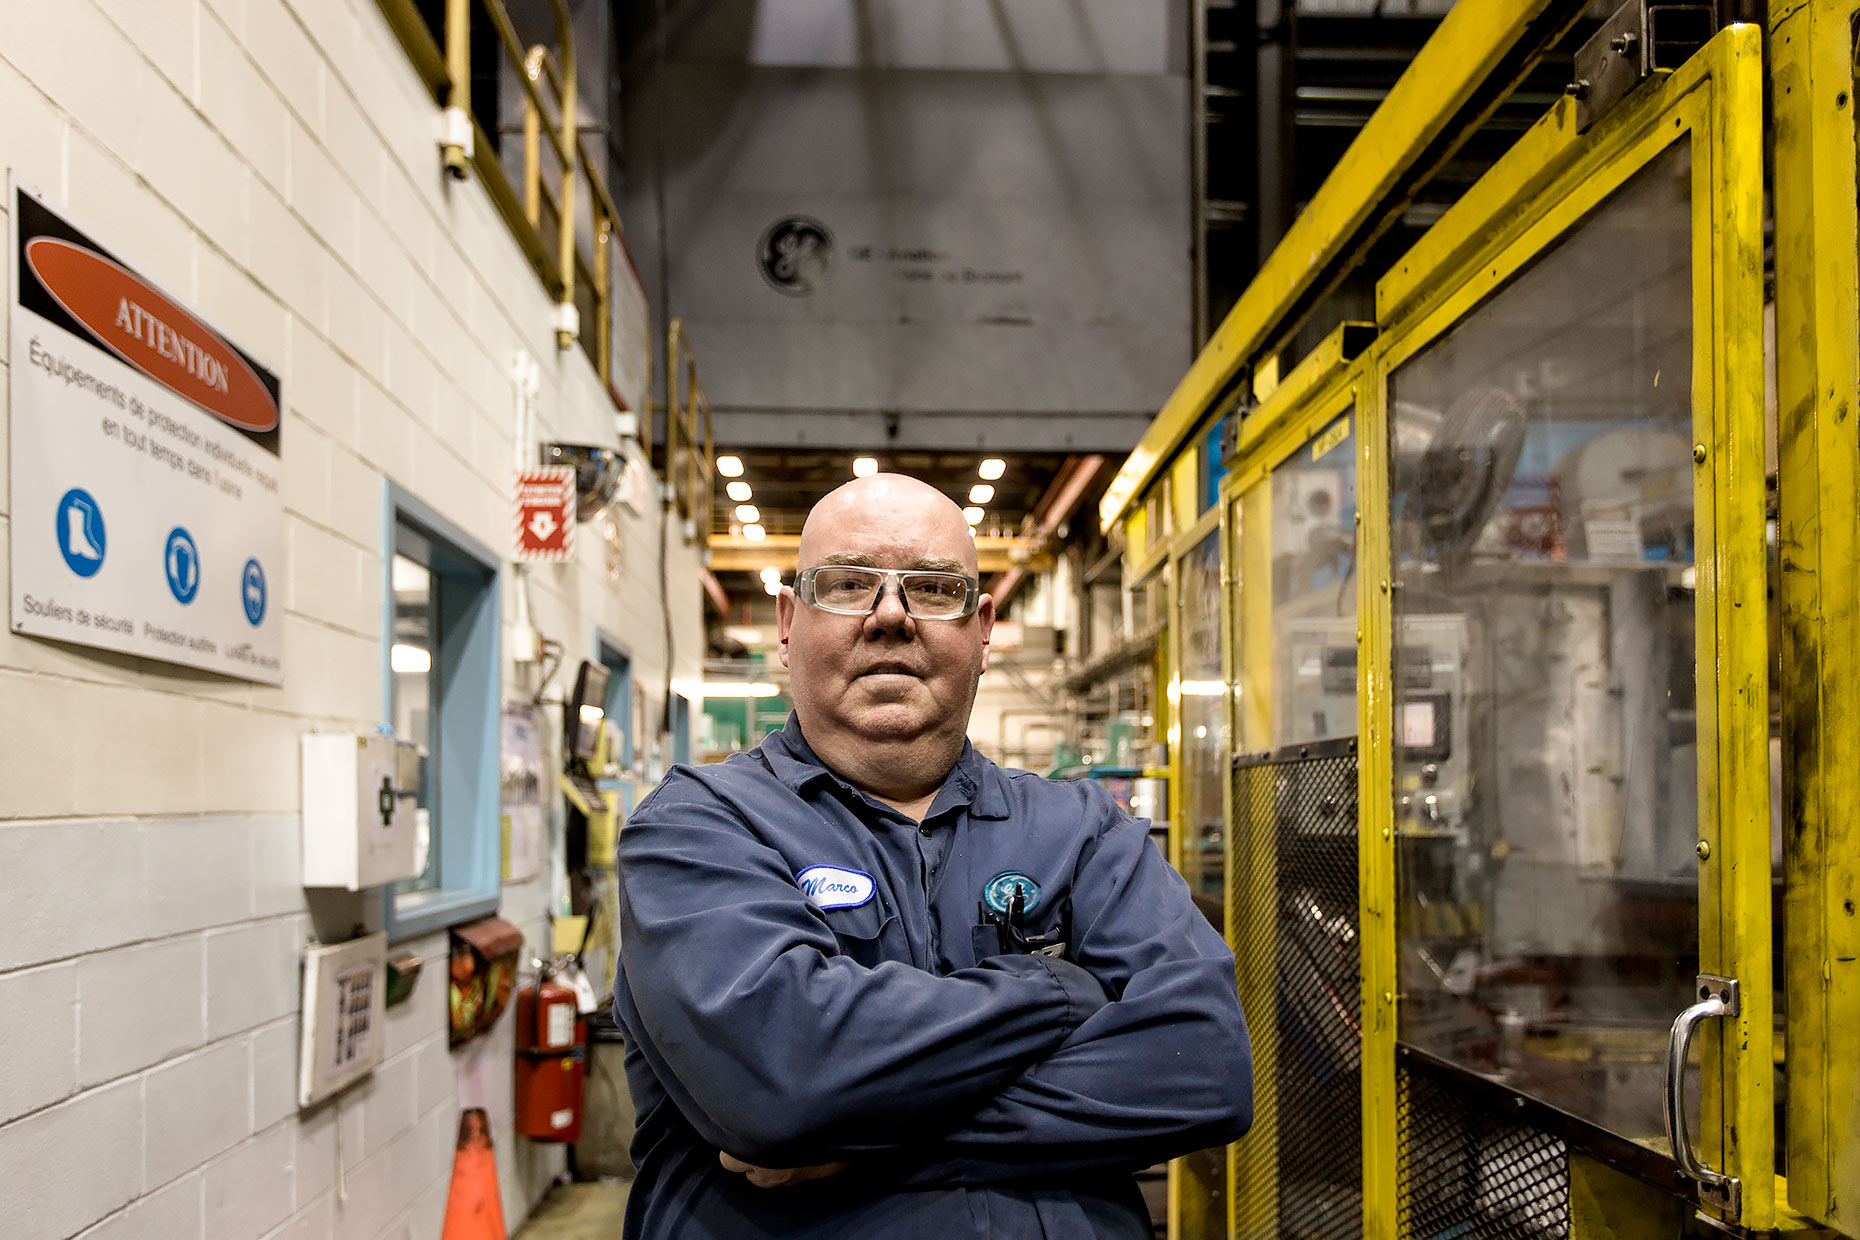 GE Technician environmental portrait with arms crossed | Scott Gable industrial photographer